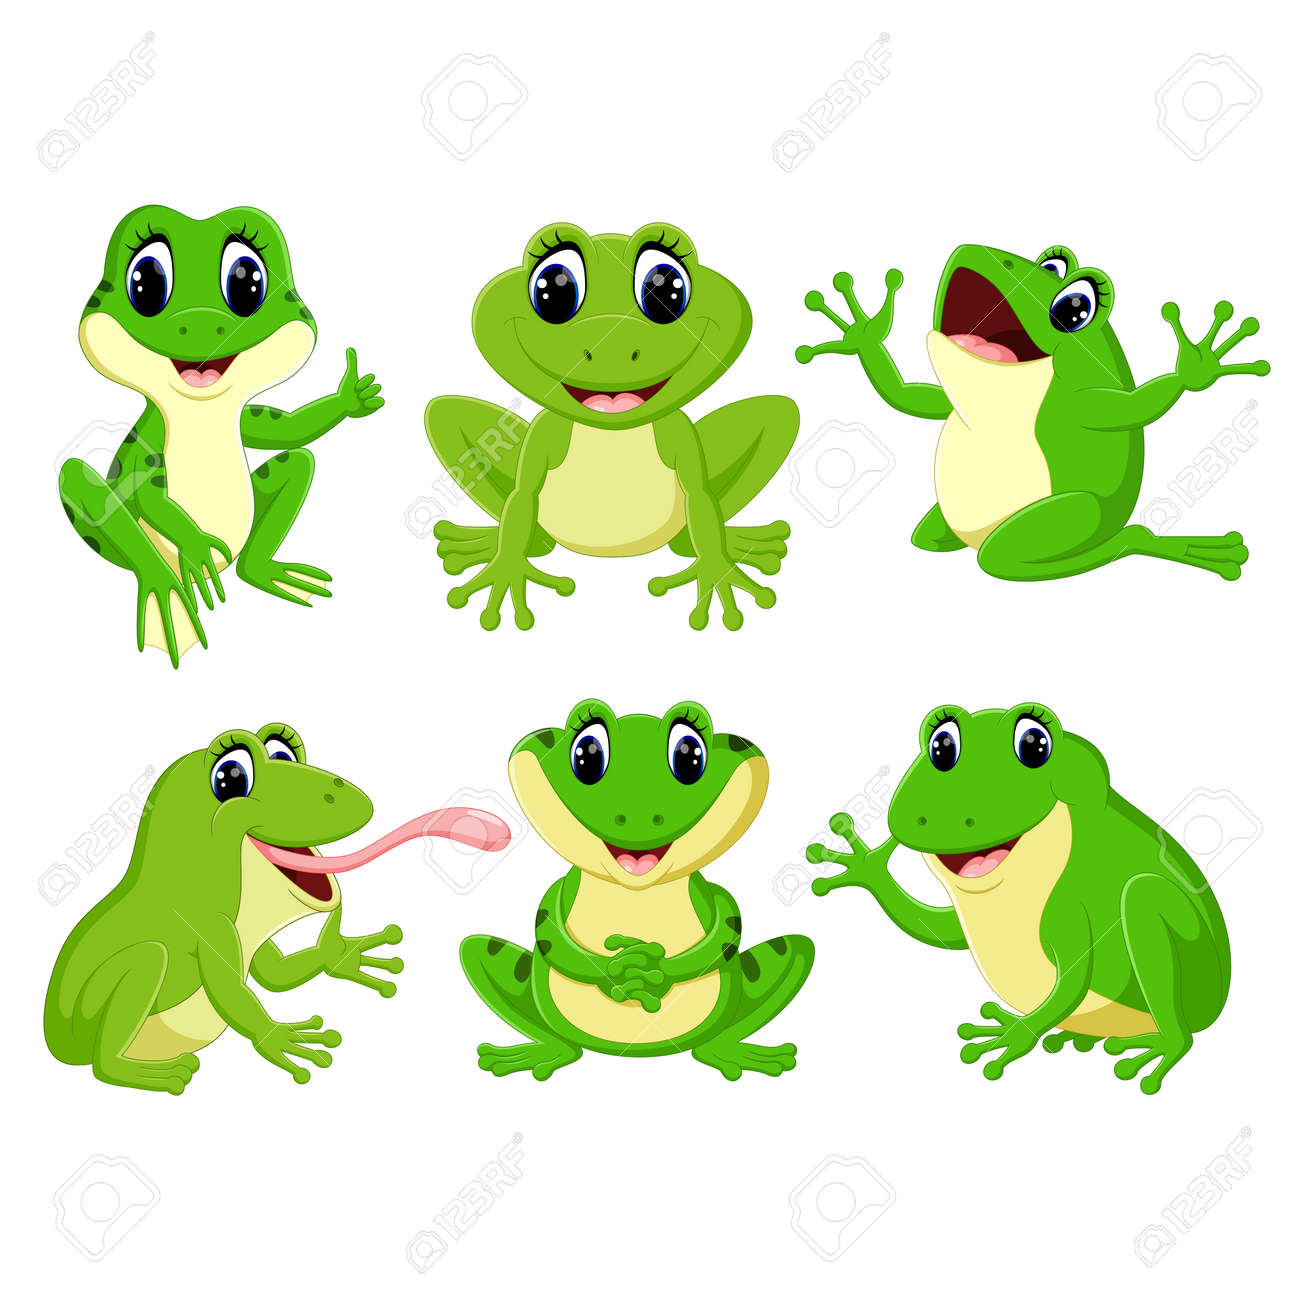 the collection of the pretty green frogs in the different posing - 109066679